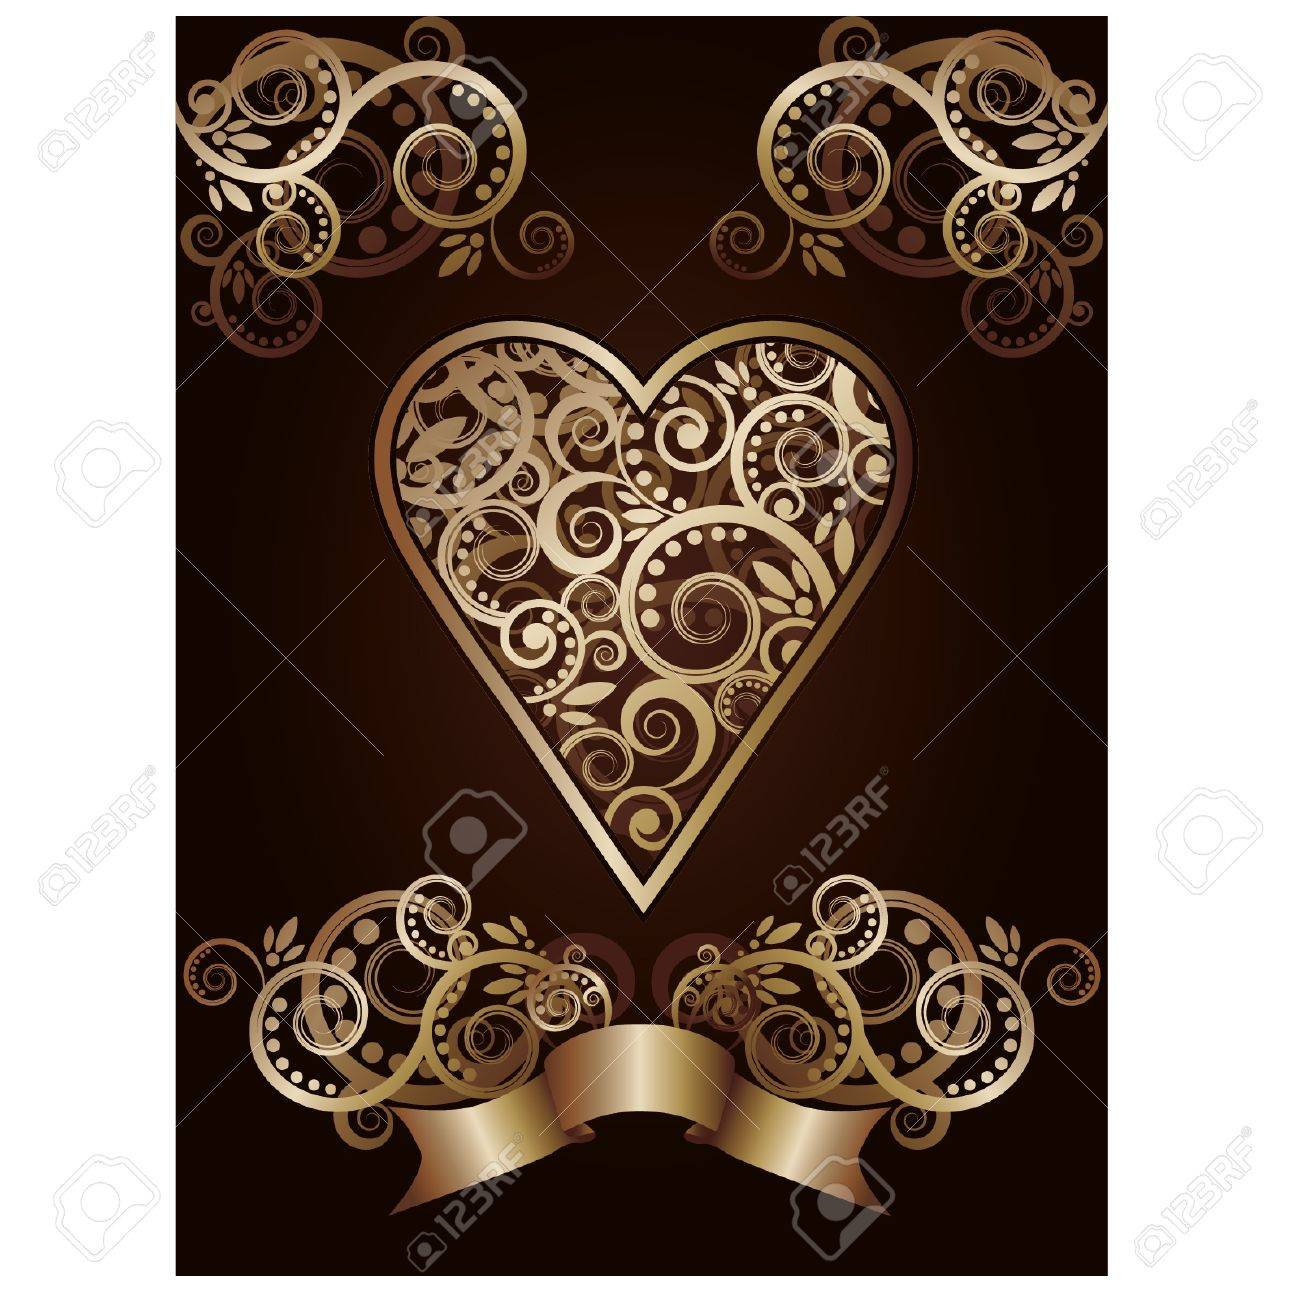 Heart  ace poker playing cards, illustration Stock Vector - 17714117